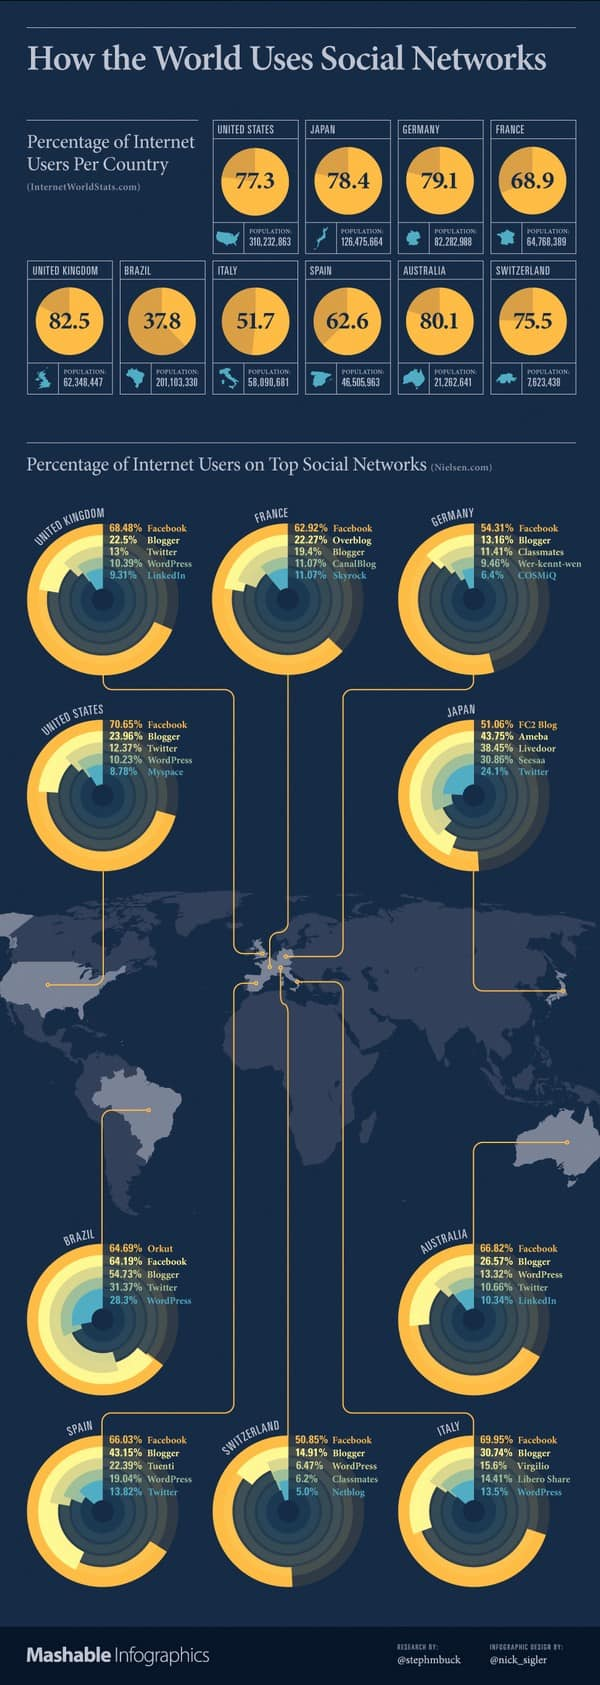 How the World Uses Social Networks INFOGRAPHIC